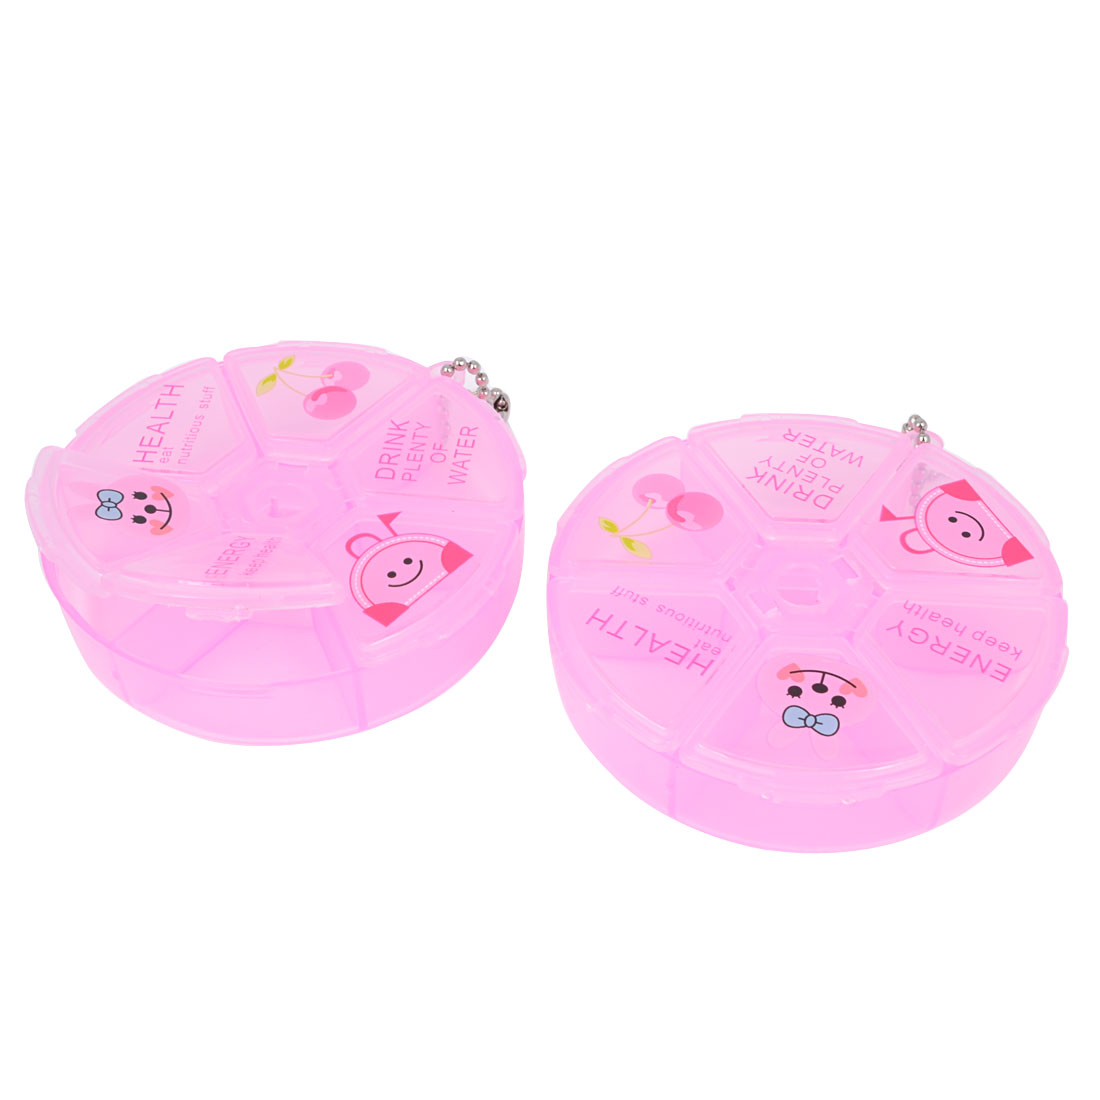 Travelling Clear Pink Plastic 3 Compartment Round Pill Storage Box Holder 2 Pcs